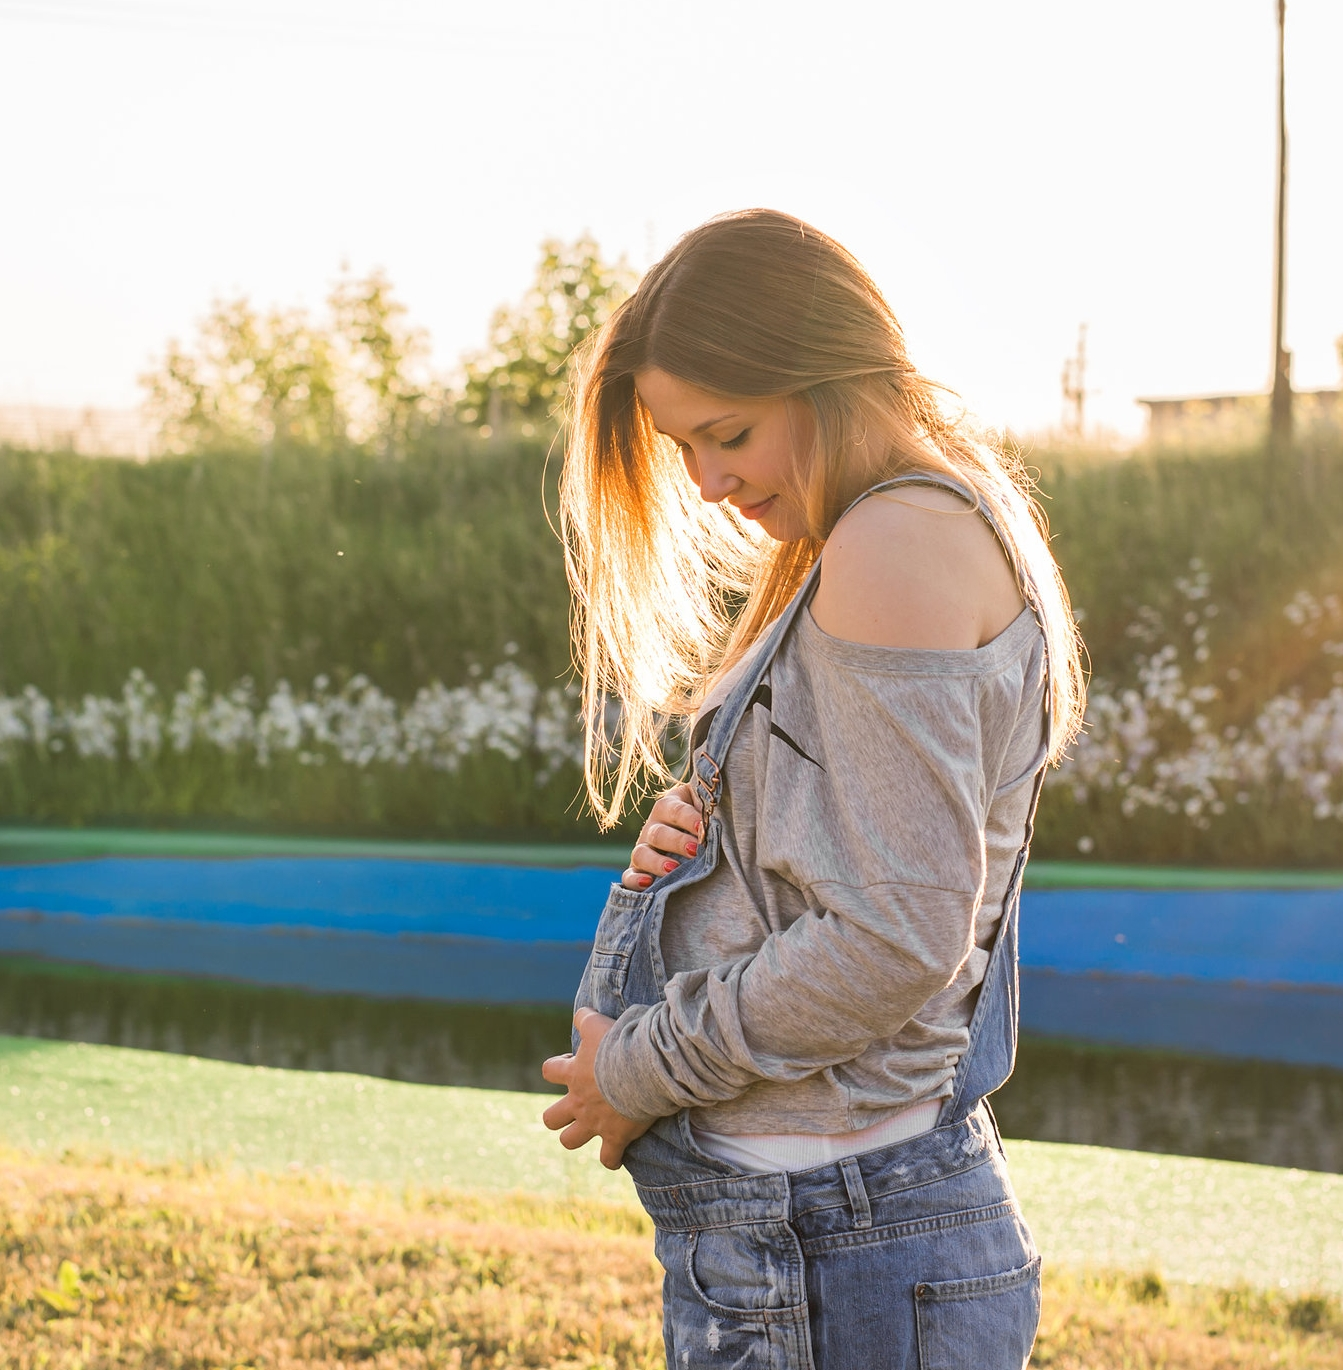 Are you pregnant? - Get more information on the options available to you.